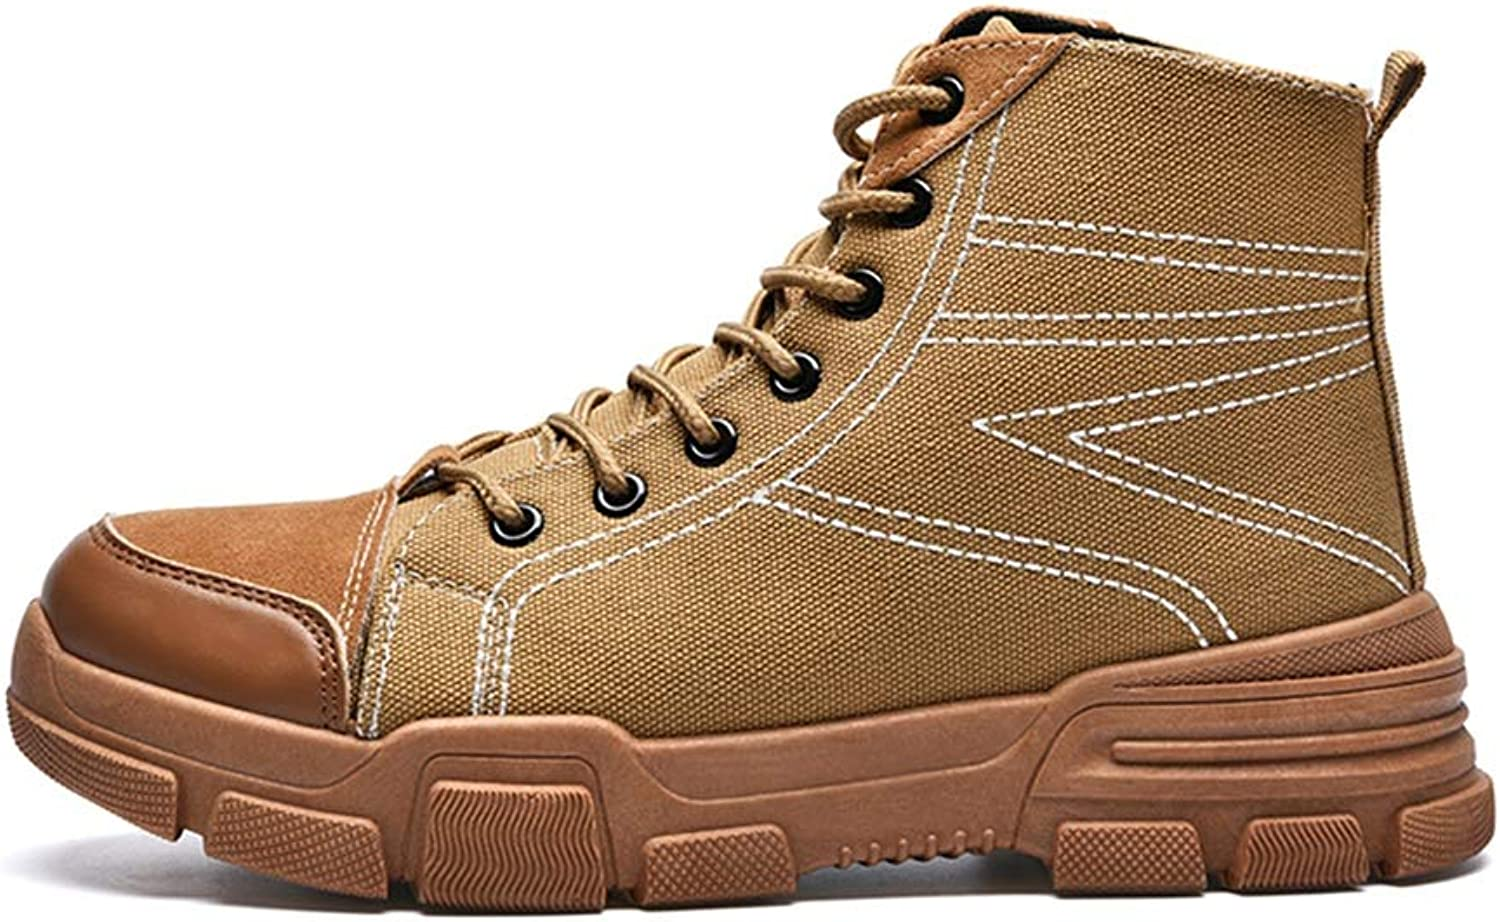 Easy Go Shopping Herrenmode Winterstiefel Casual Youth Youth Youth Klassisch Britisch Stil High Top Dick Ferse Schuhe,Grille Schuhe  c11ceb